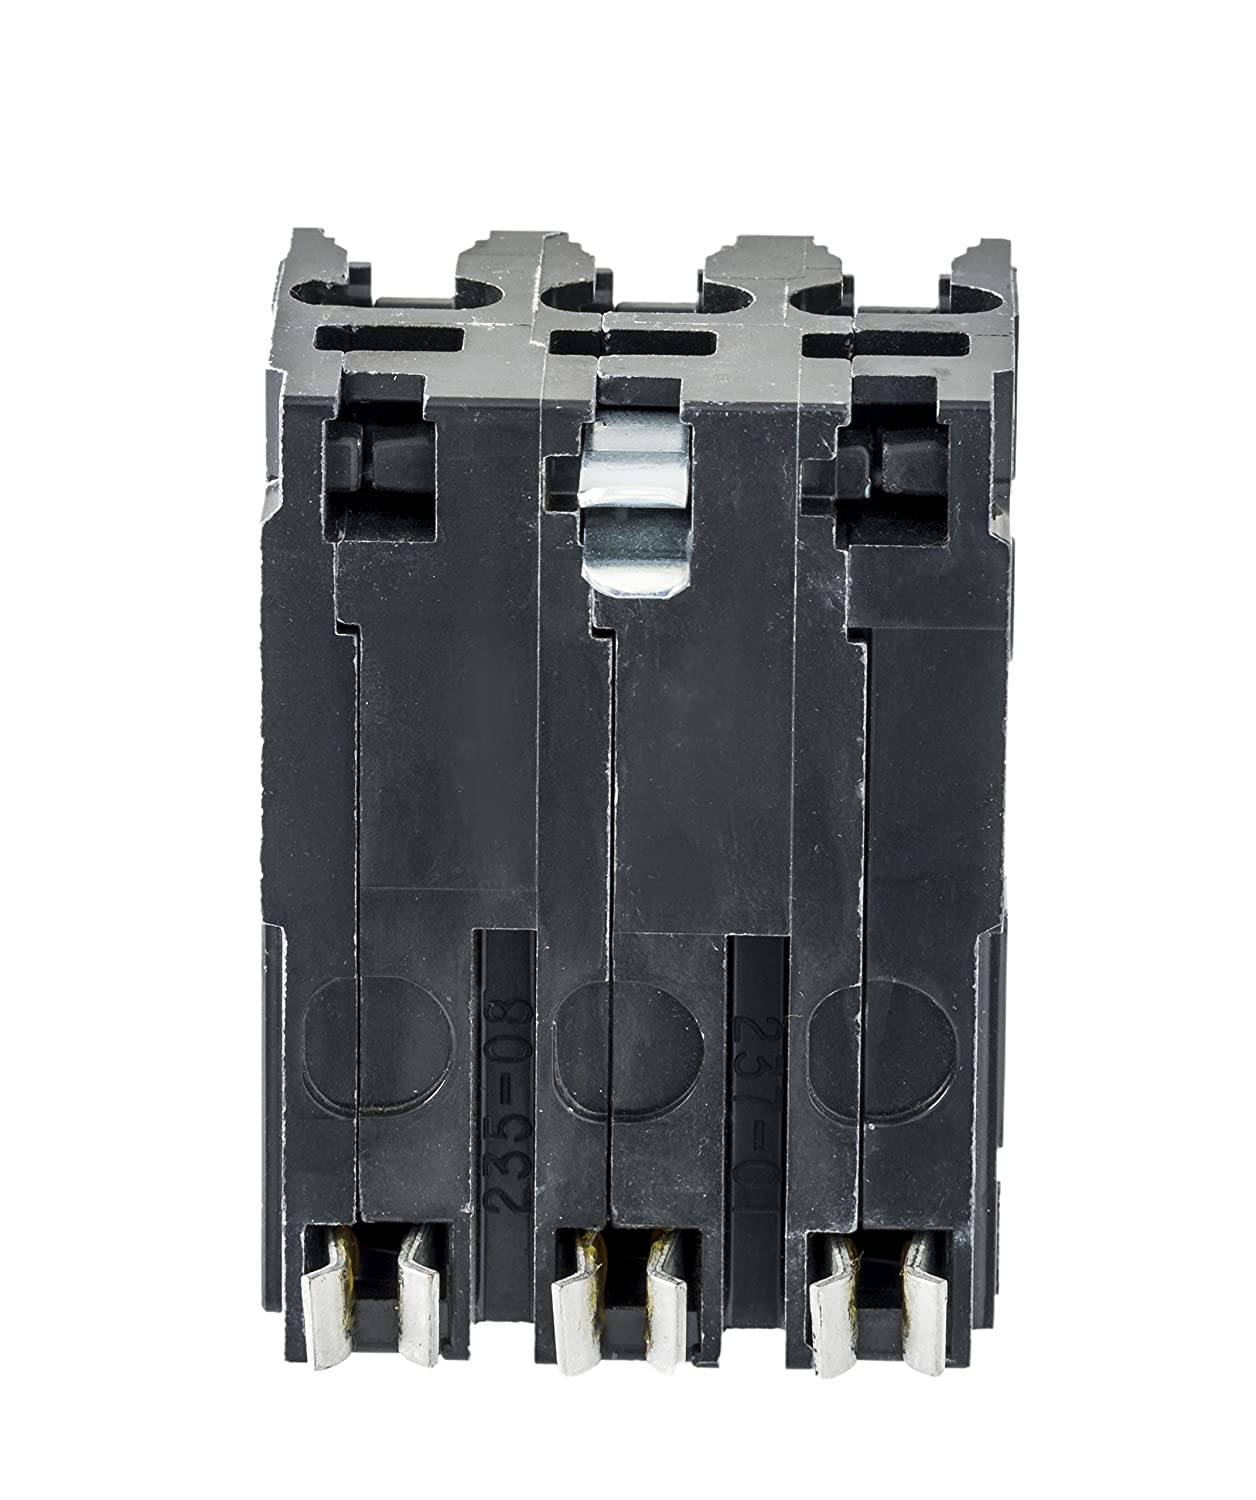 Square D By Schneider Electric Qo315 Qo 15 Amp Three Pole Circuit Breaker Types Video Different Of Breakers Ehow